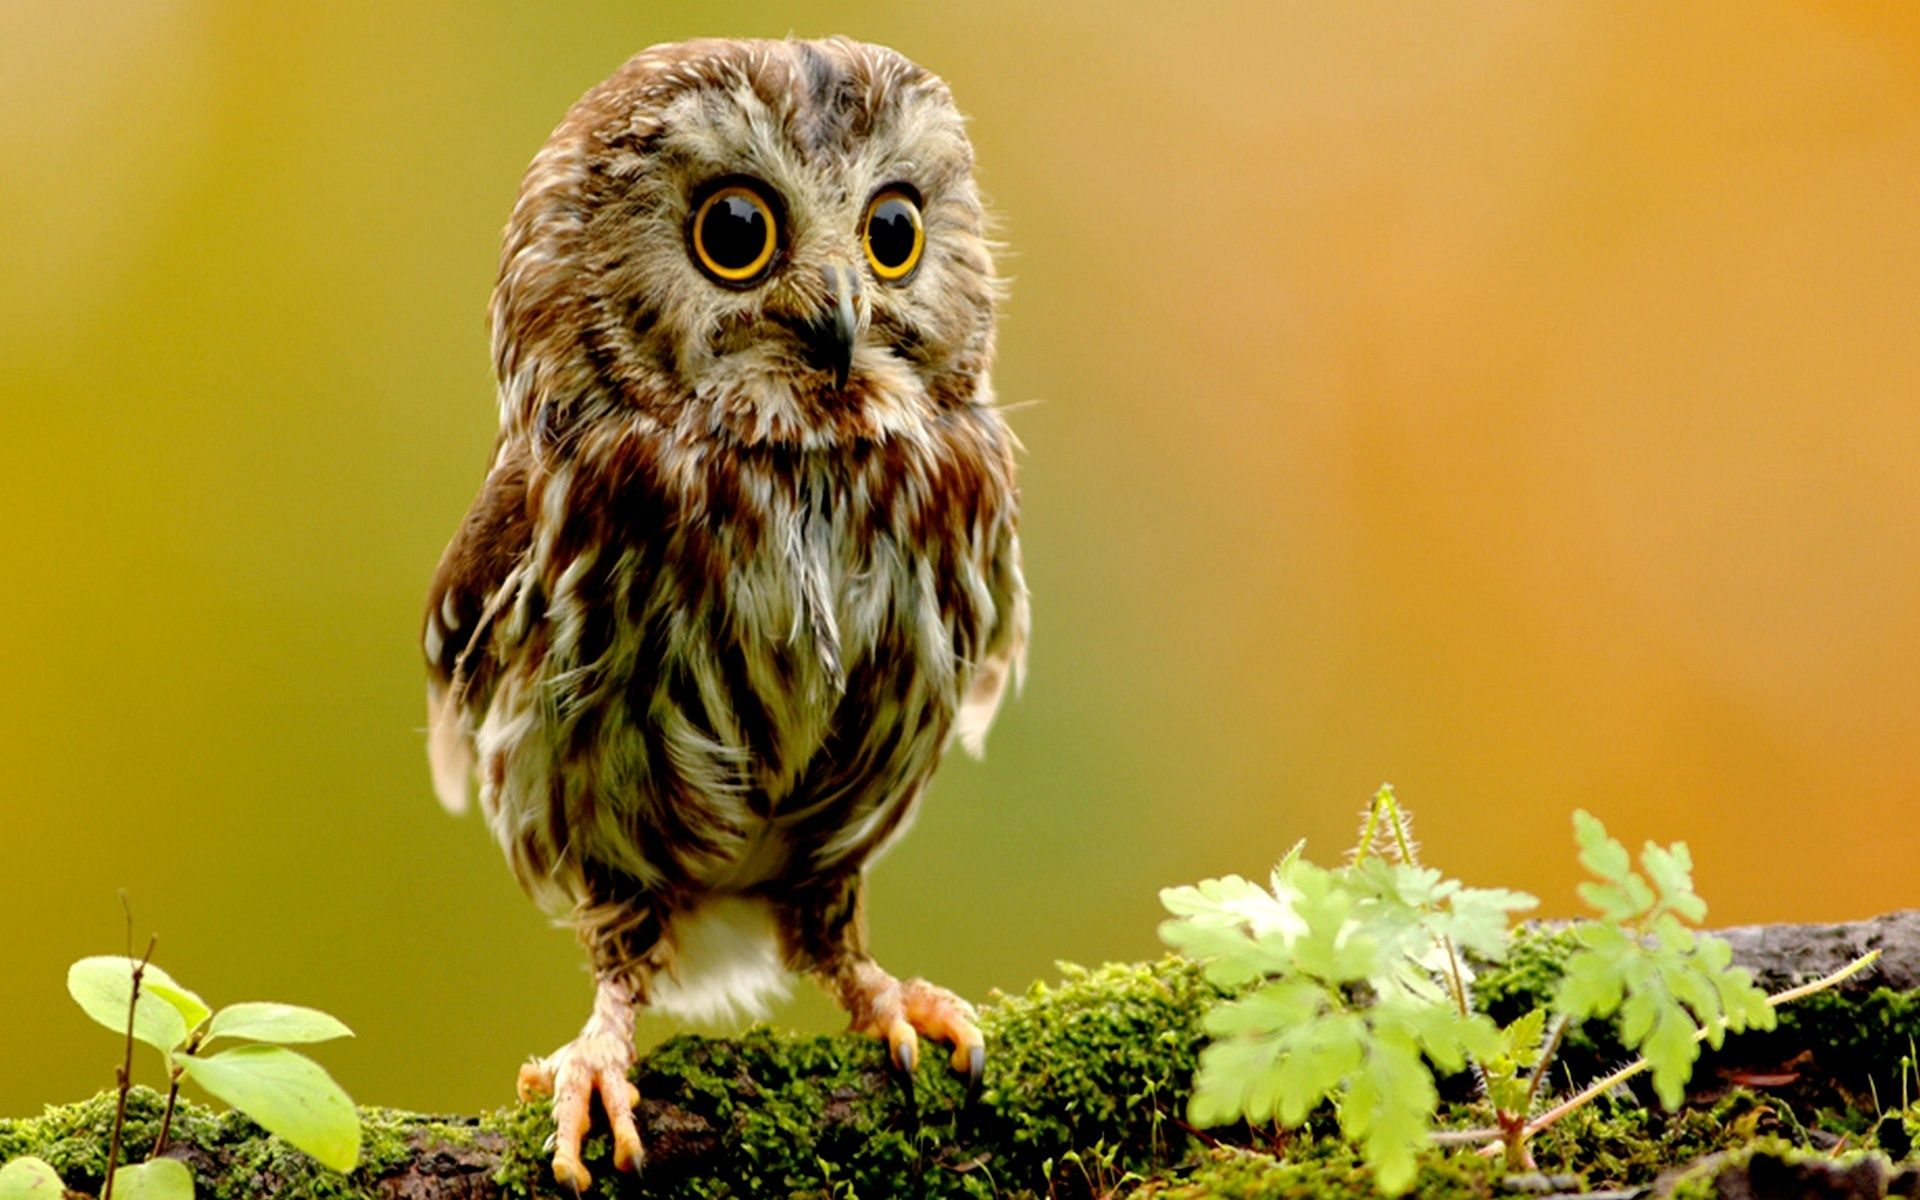 colorful owl wallpaper owl wallpaper, animals, owlet, small hd